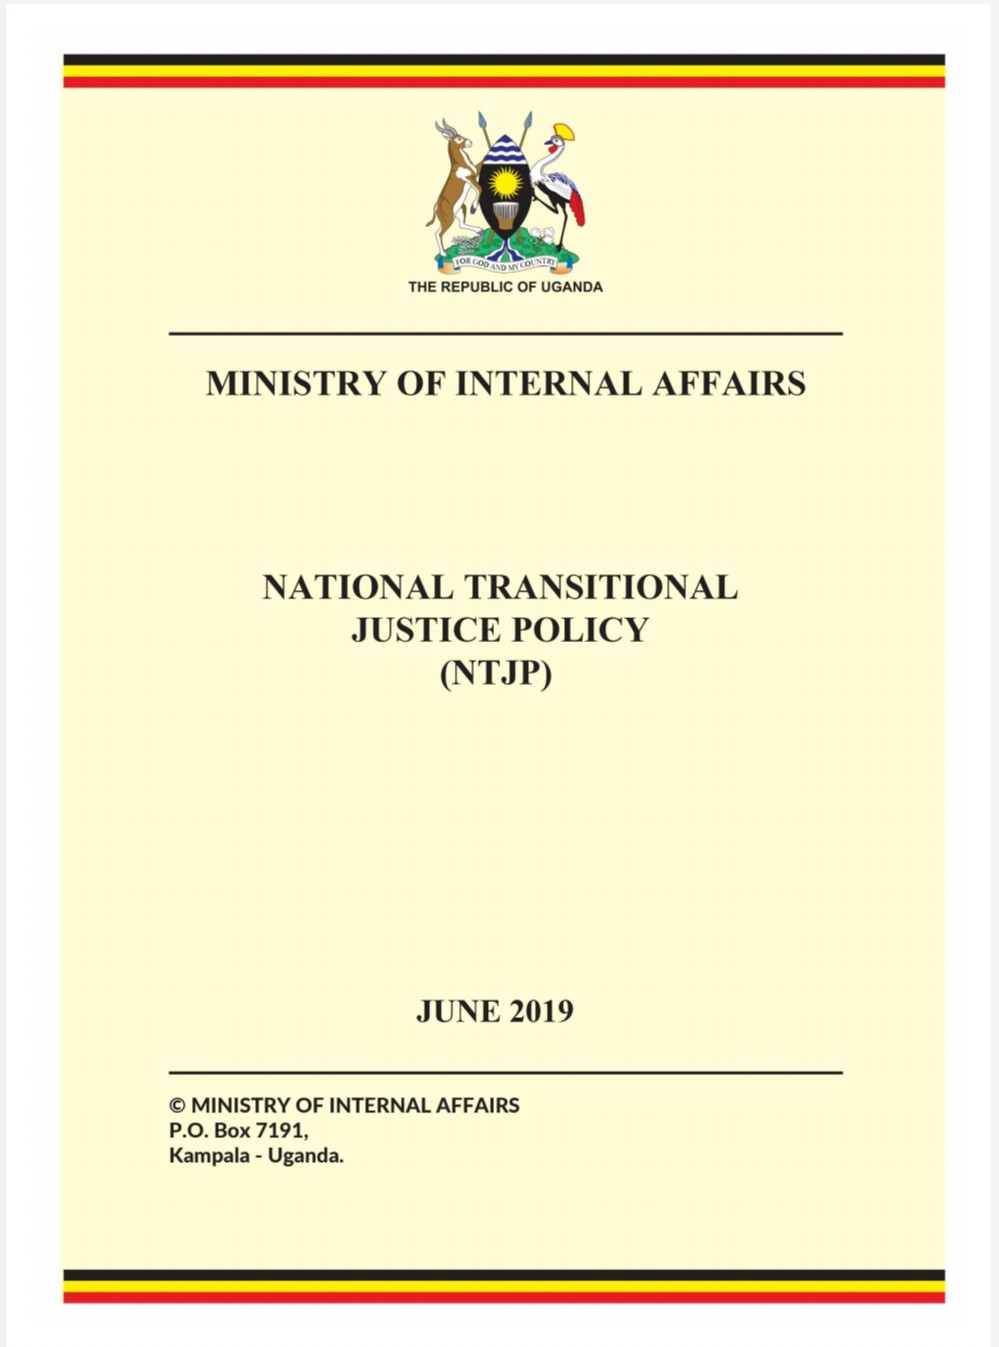 Uganda's National Transitional Justice Policy was approved by the Cabinet on 17 June 2019.